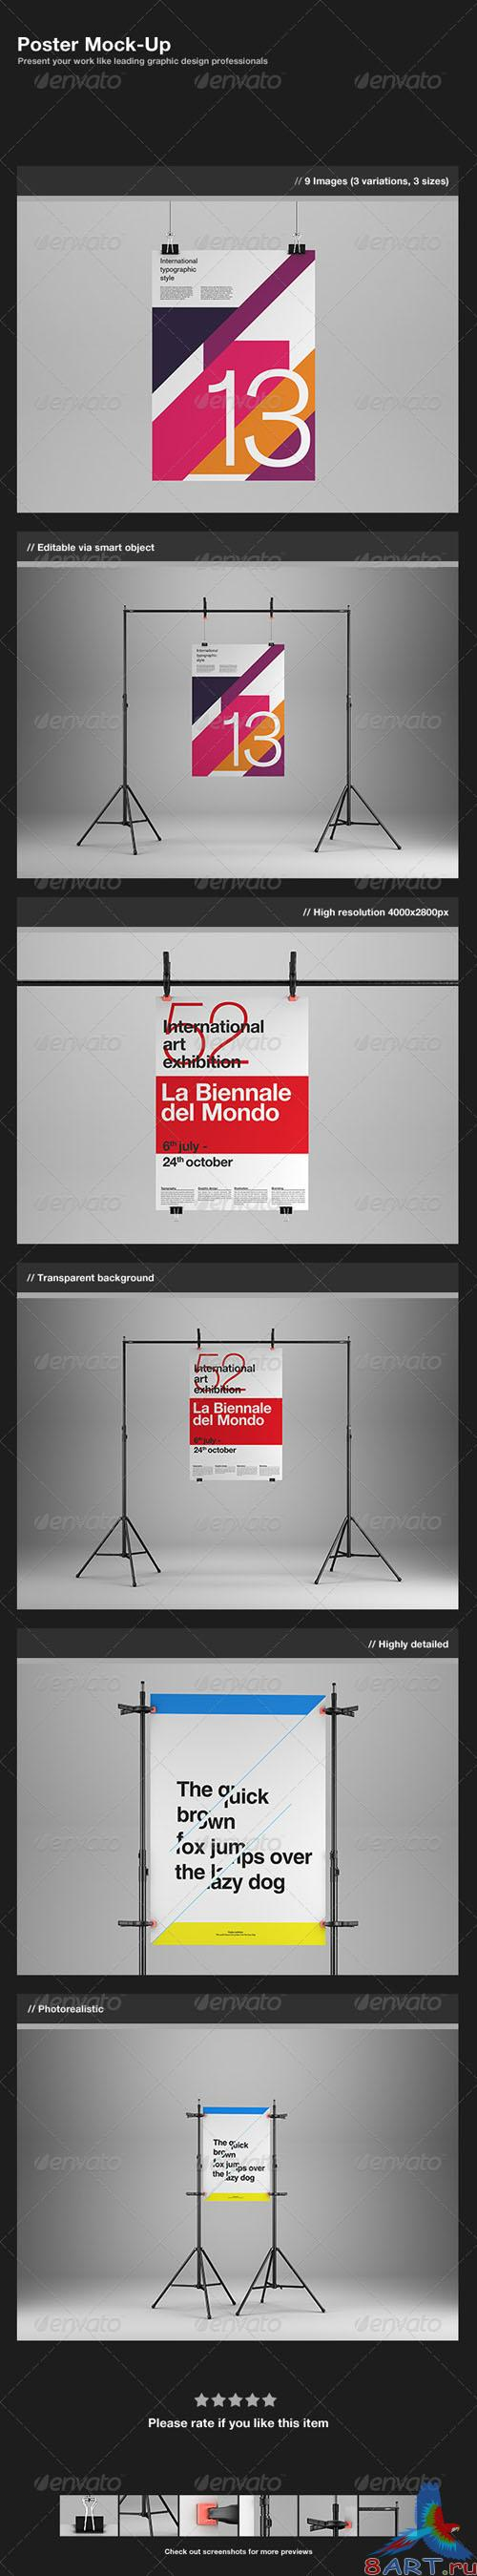 GraphicRiver Poster Mock-Up - REUPLOAD